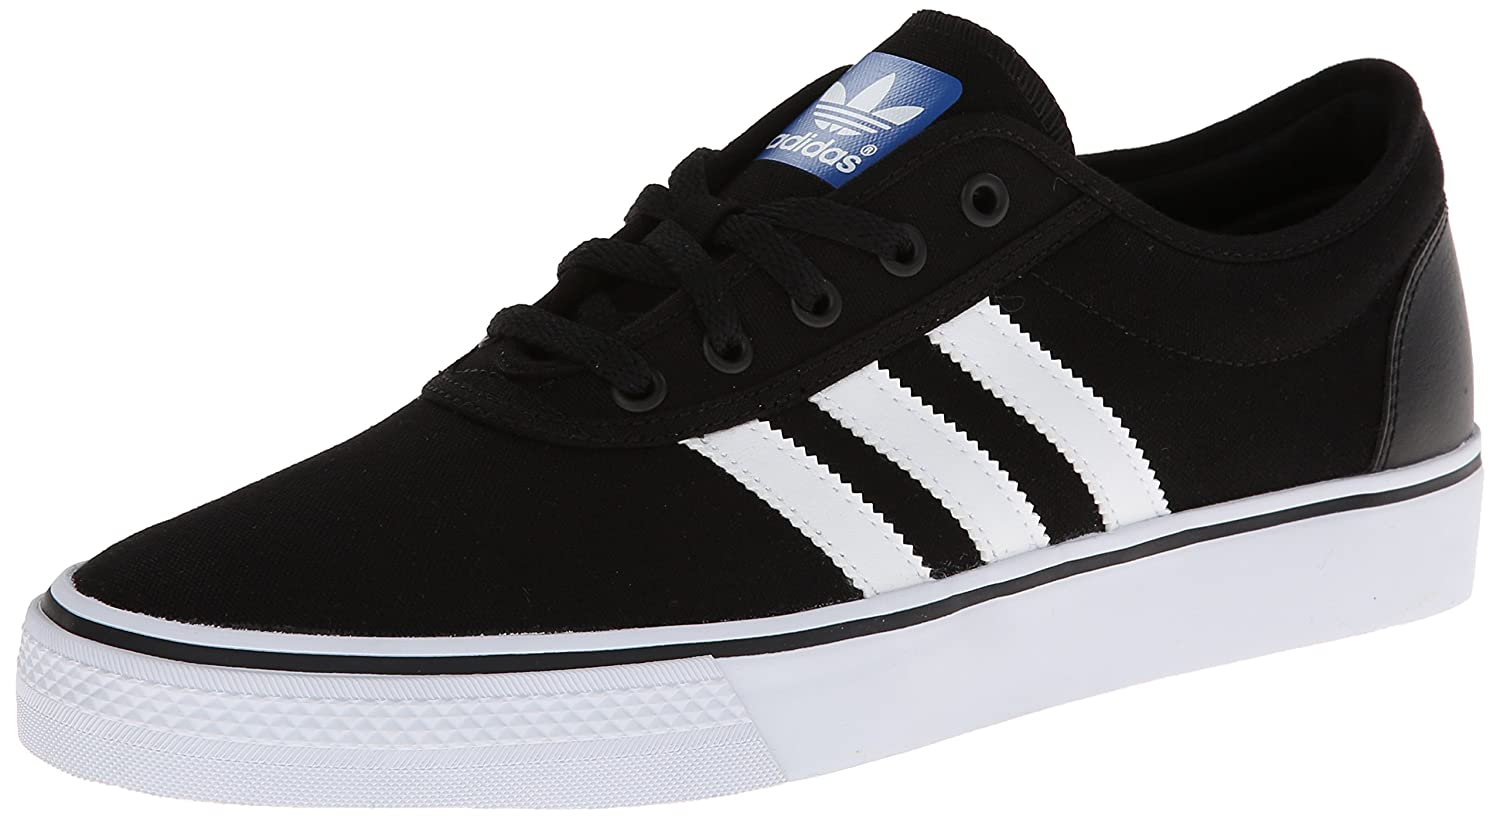 Adidas Men's Adi-Ease Lace up Sneaker B00HAJLW2E 9 D(M) US|Black/White/Black